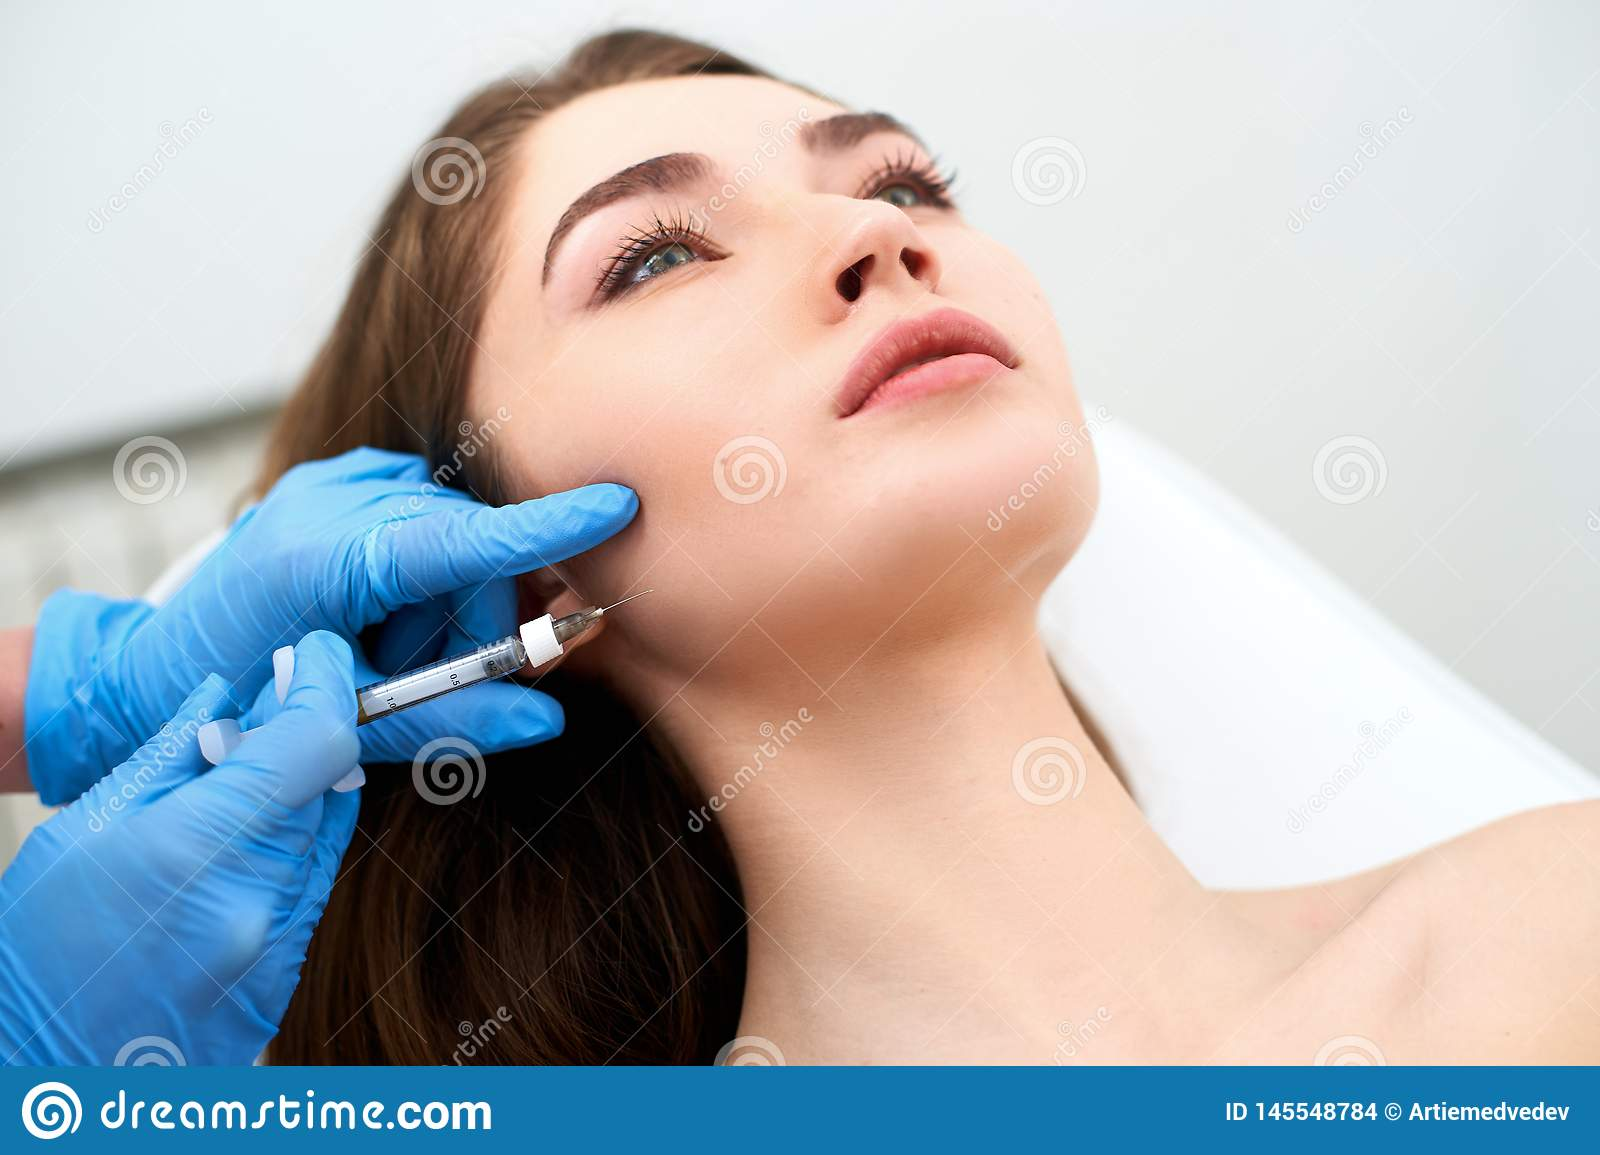 Beautician doctor with filler syringe making injection to jowls. Masseter lines reduction and face contouring therapy